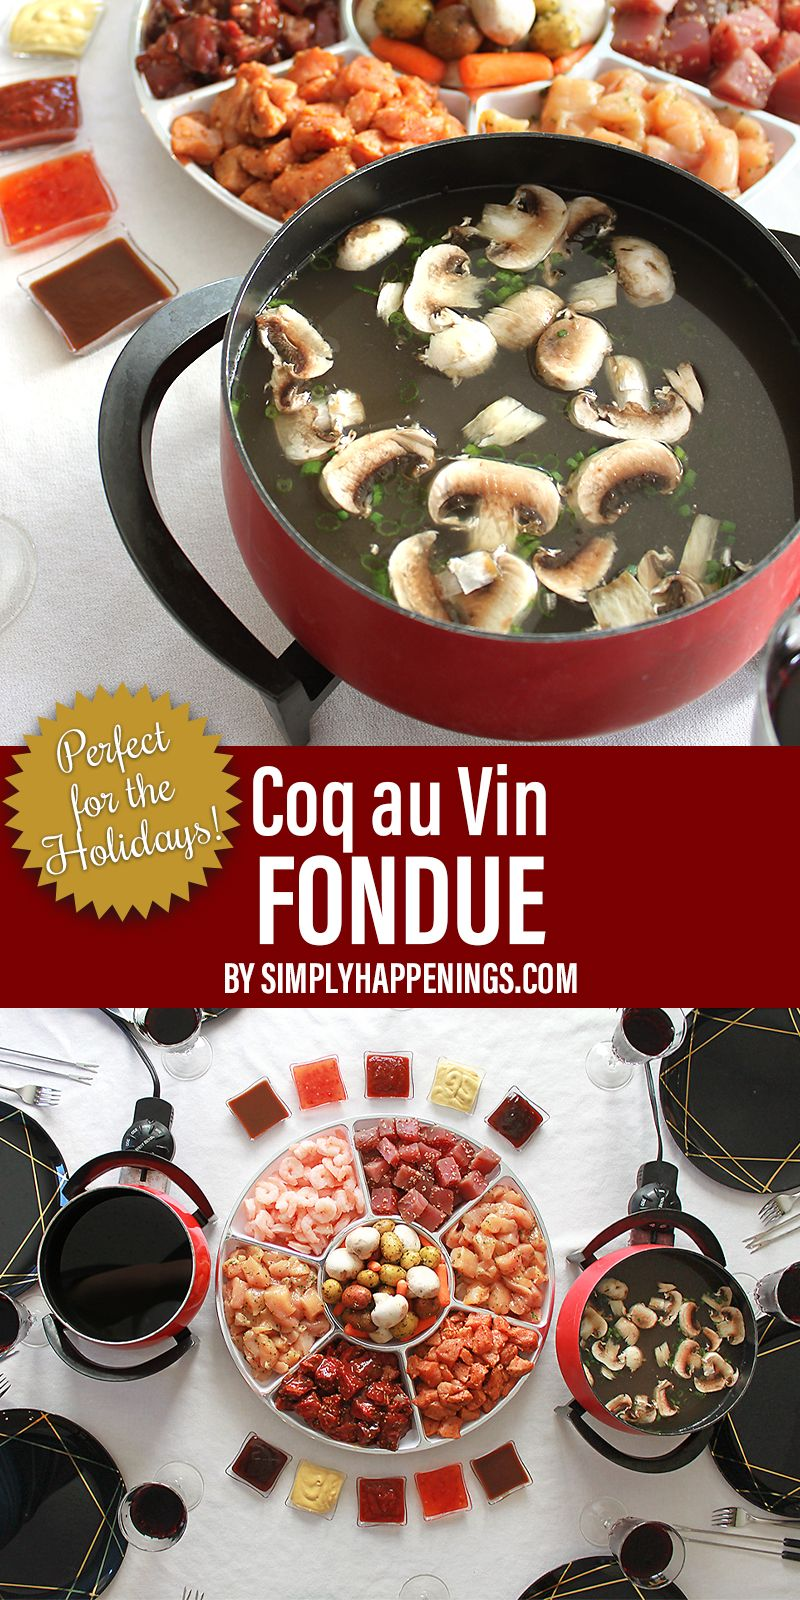 Coq Au Vin Fondue In 2020 Fondue Recipes Meat Melting Pot Recipes Coq Au Vin